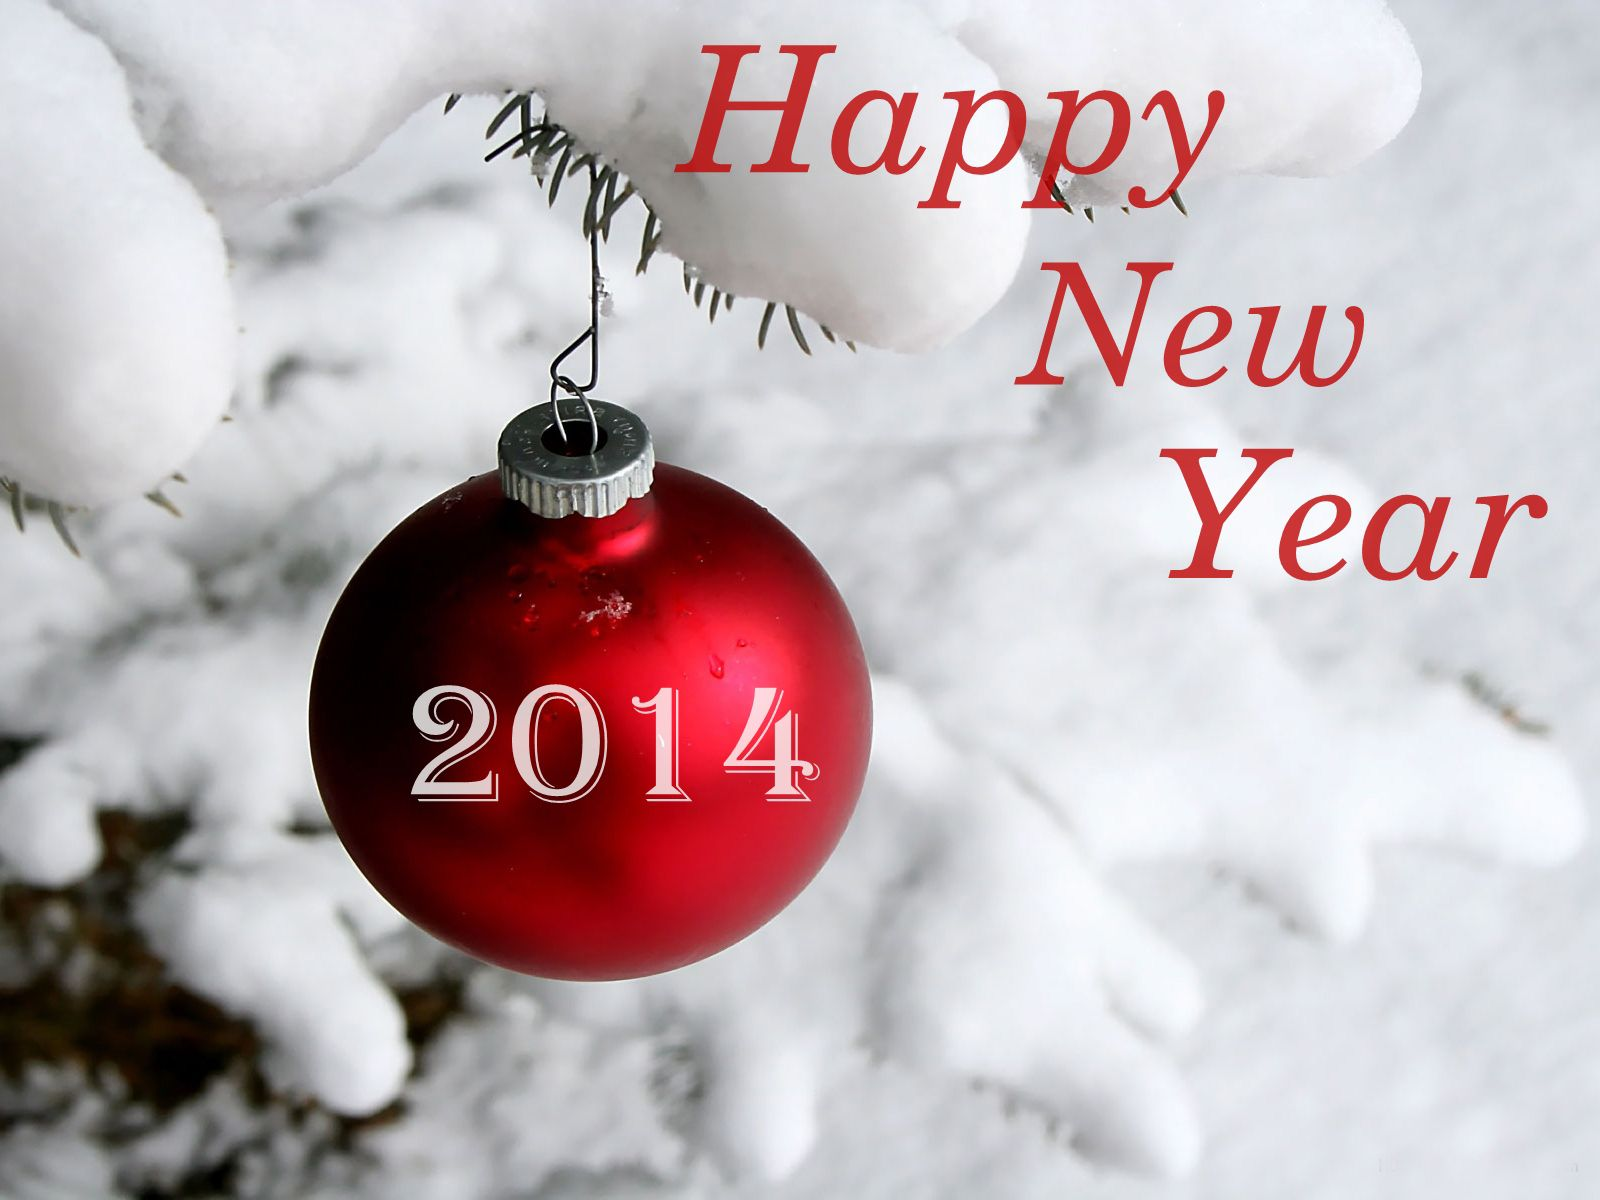 free clip art religious new year happy new year 2014 free download hd images